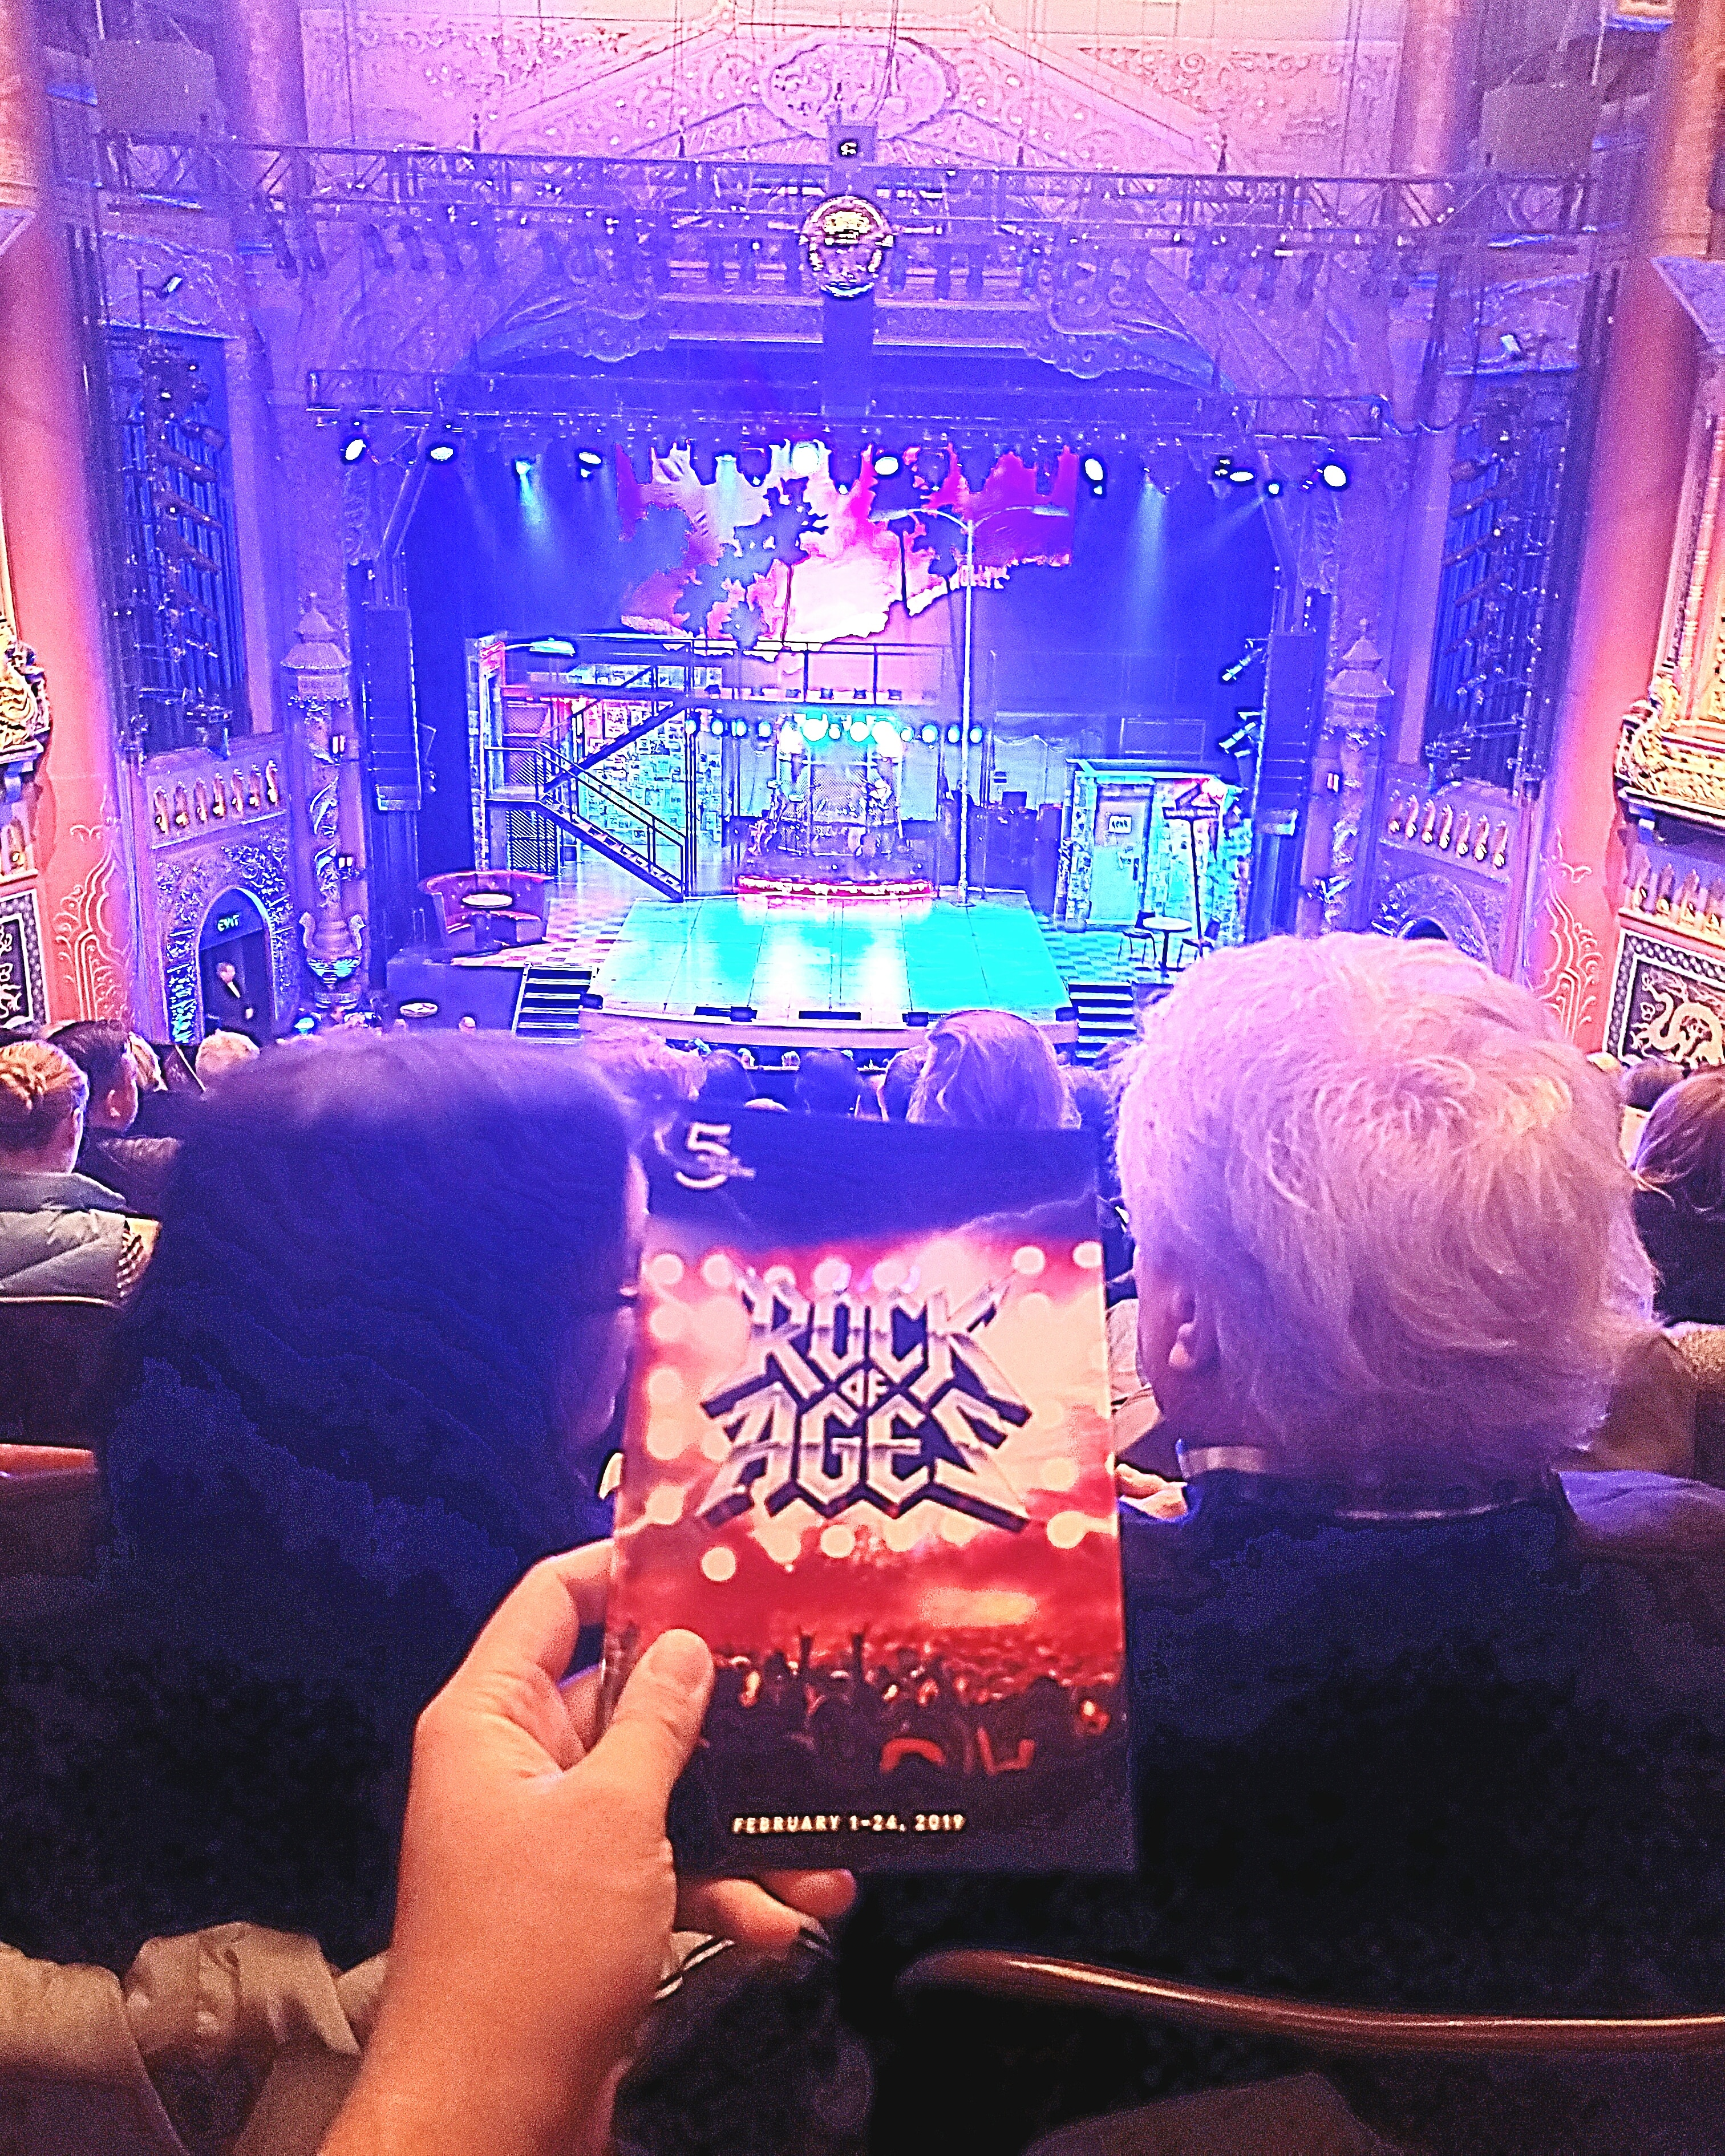 @RockOfAgesMusical closing weekend at @The5thAvenueTheatre. #Corny #jukebox #80s #rock #musical. #TightHarmonies. #Rowdy audience. #Loud sound engineering. Don't stop believing!